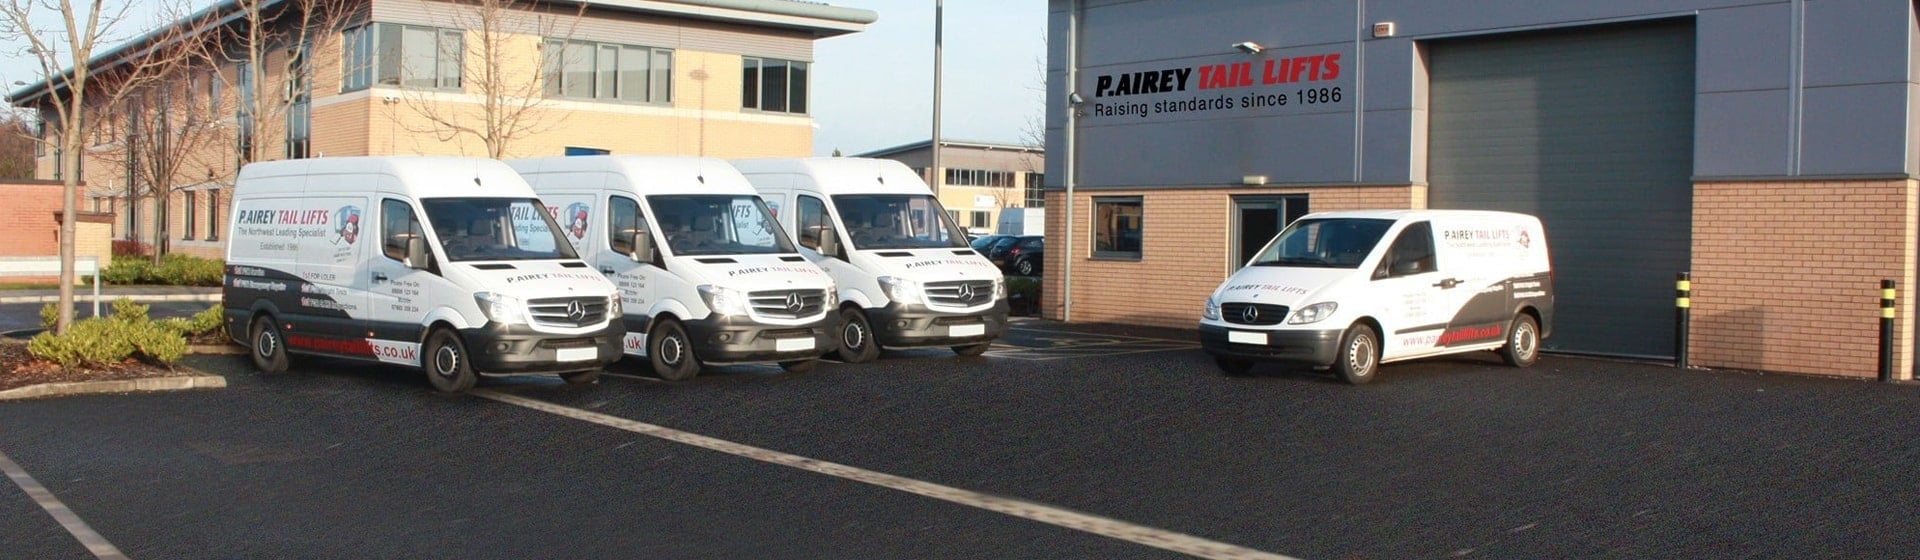 Vans Outside P. Aireay Tail Lifts HQ